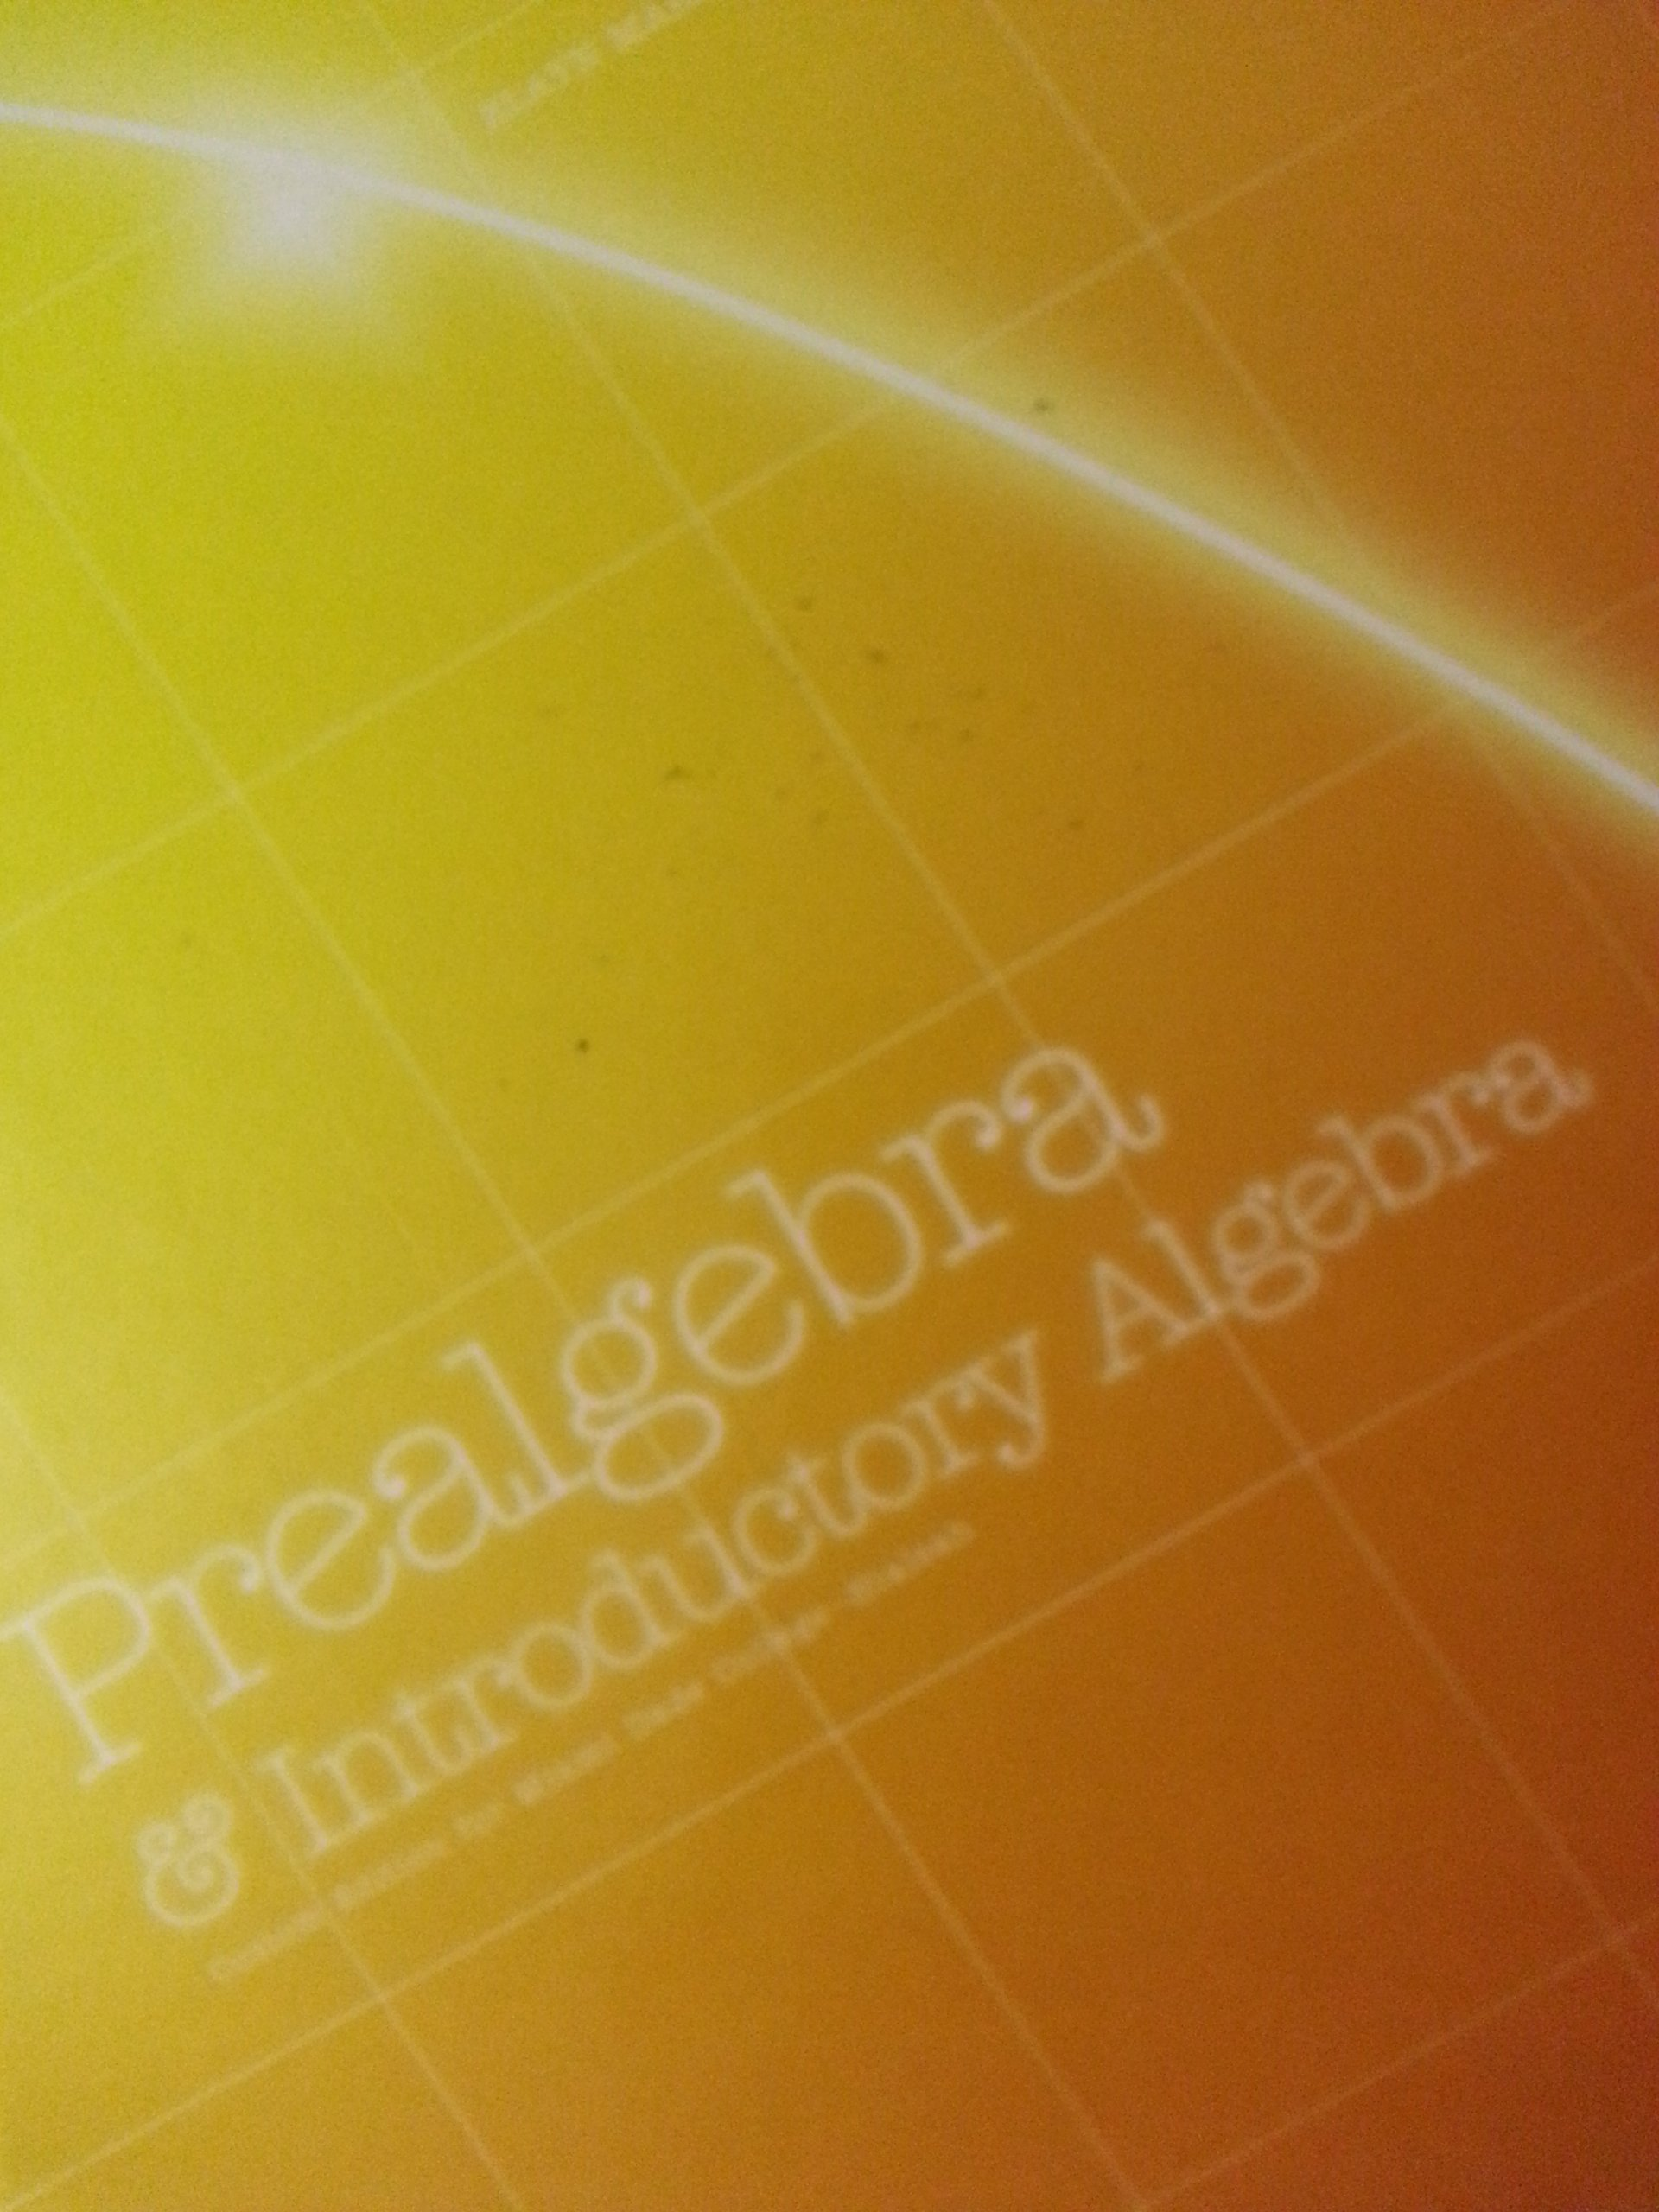 Prealgebra & Introductory Algebra - Custom Edition for Miami Dade College - Hialeah PDF